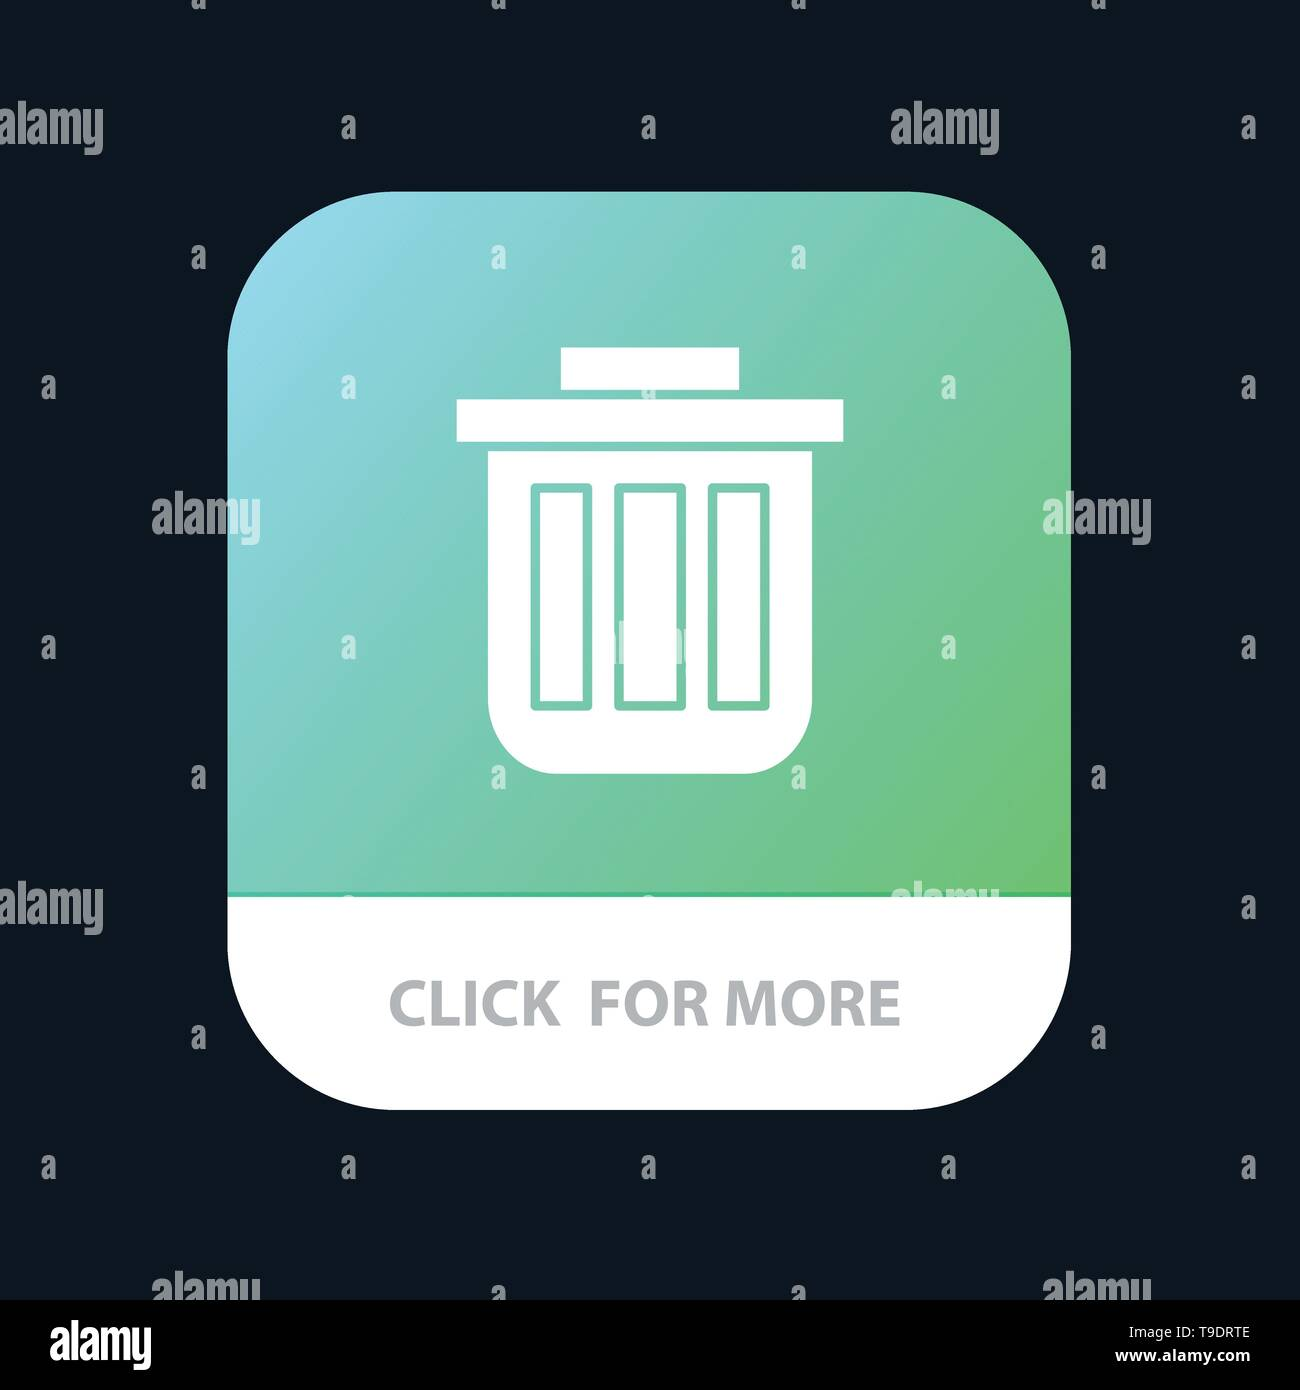 Trash, Basket, Bin, Can, Container, Dustbin, Office Mobile App Button. Android and IOS Glyph Version - Stock Image